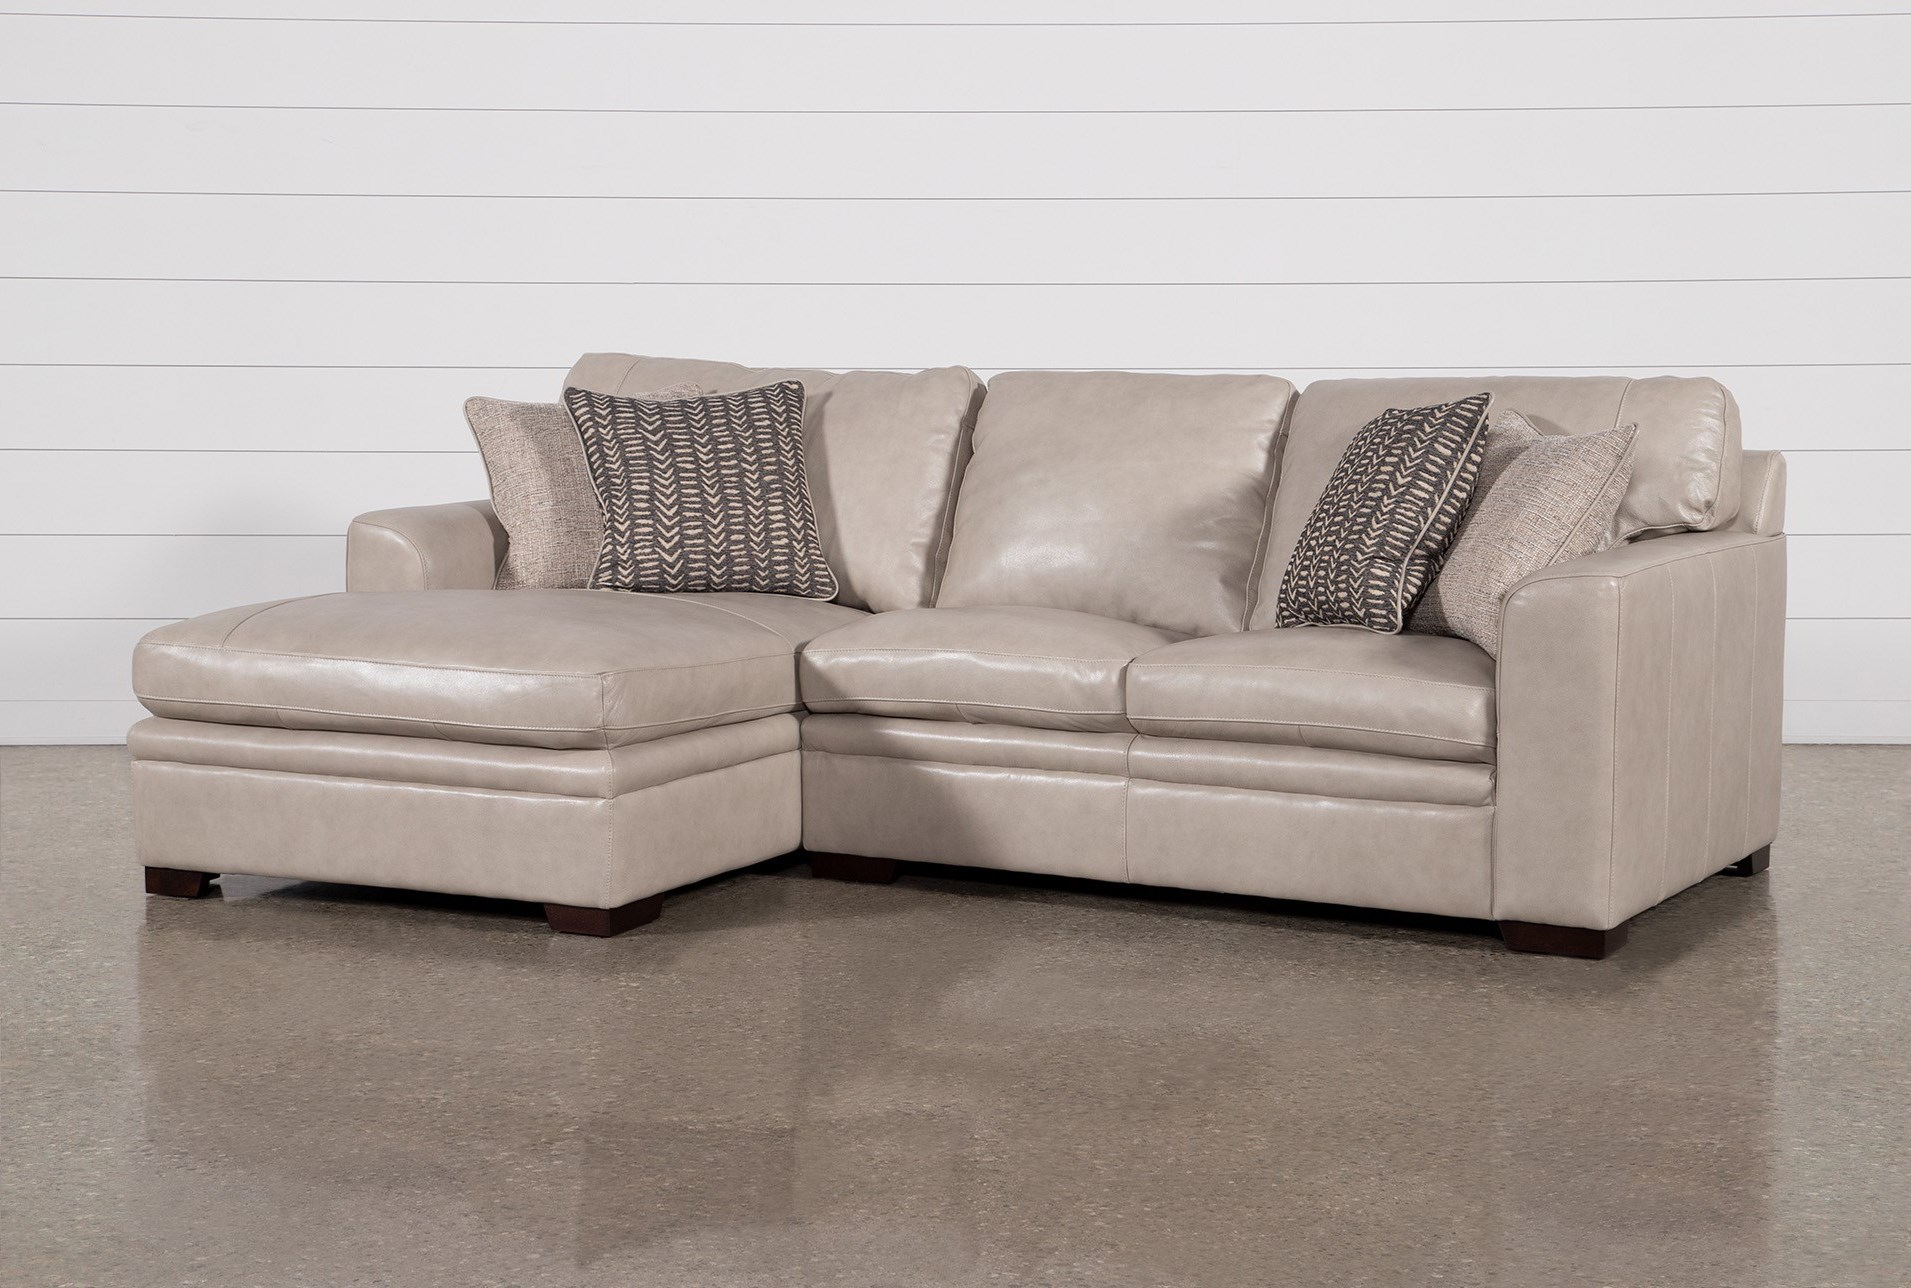 Phenomenal Greer Stone Leather 2 Piece Sectional With Left Arm Facing Chaise Right Arm Facing Loveseat Customarchery Wood Chair Design Ideas Customarcherynet